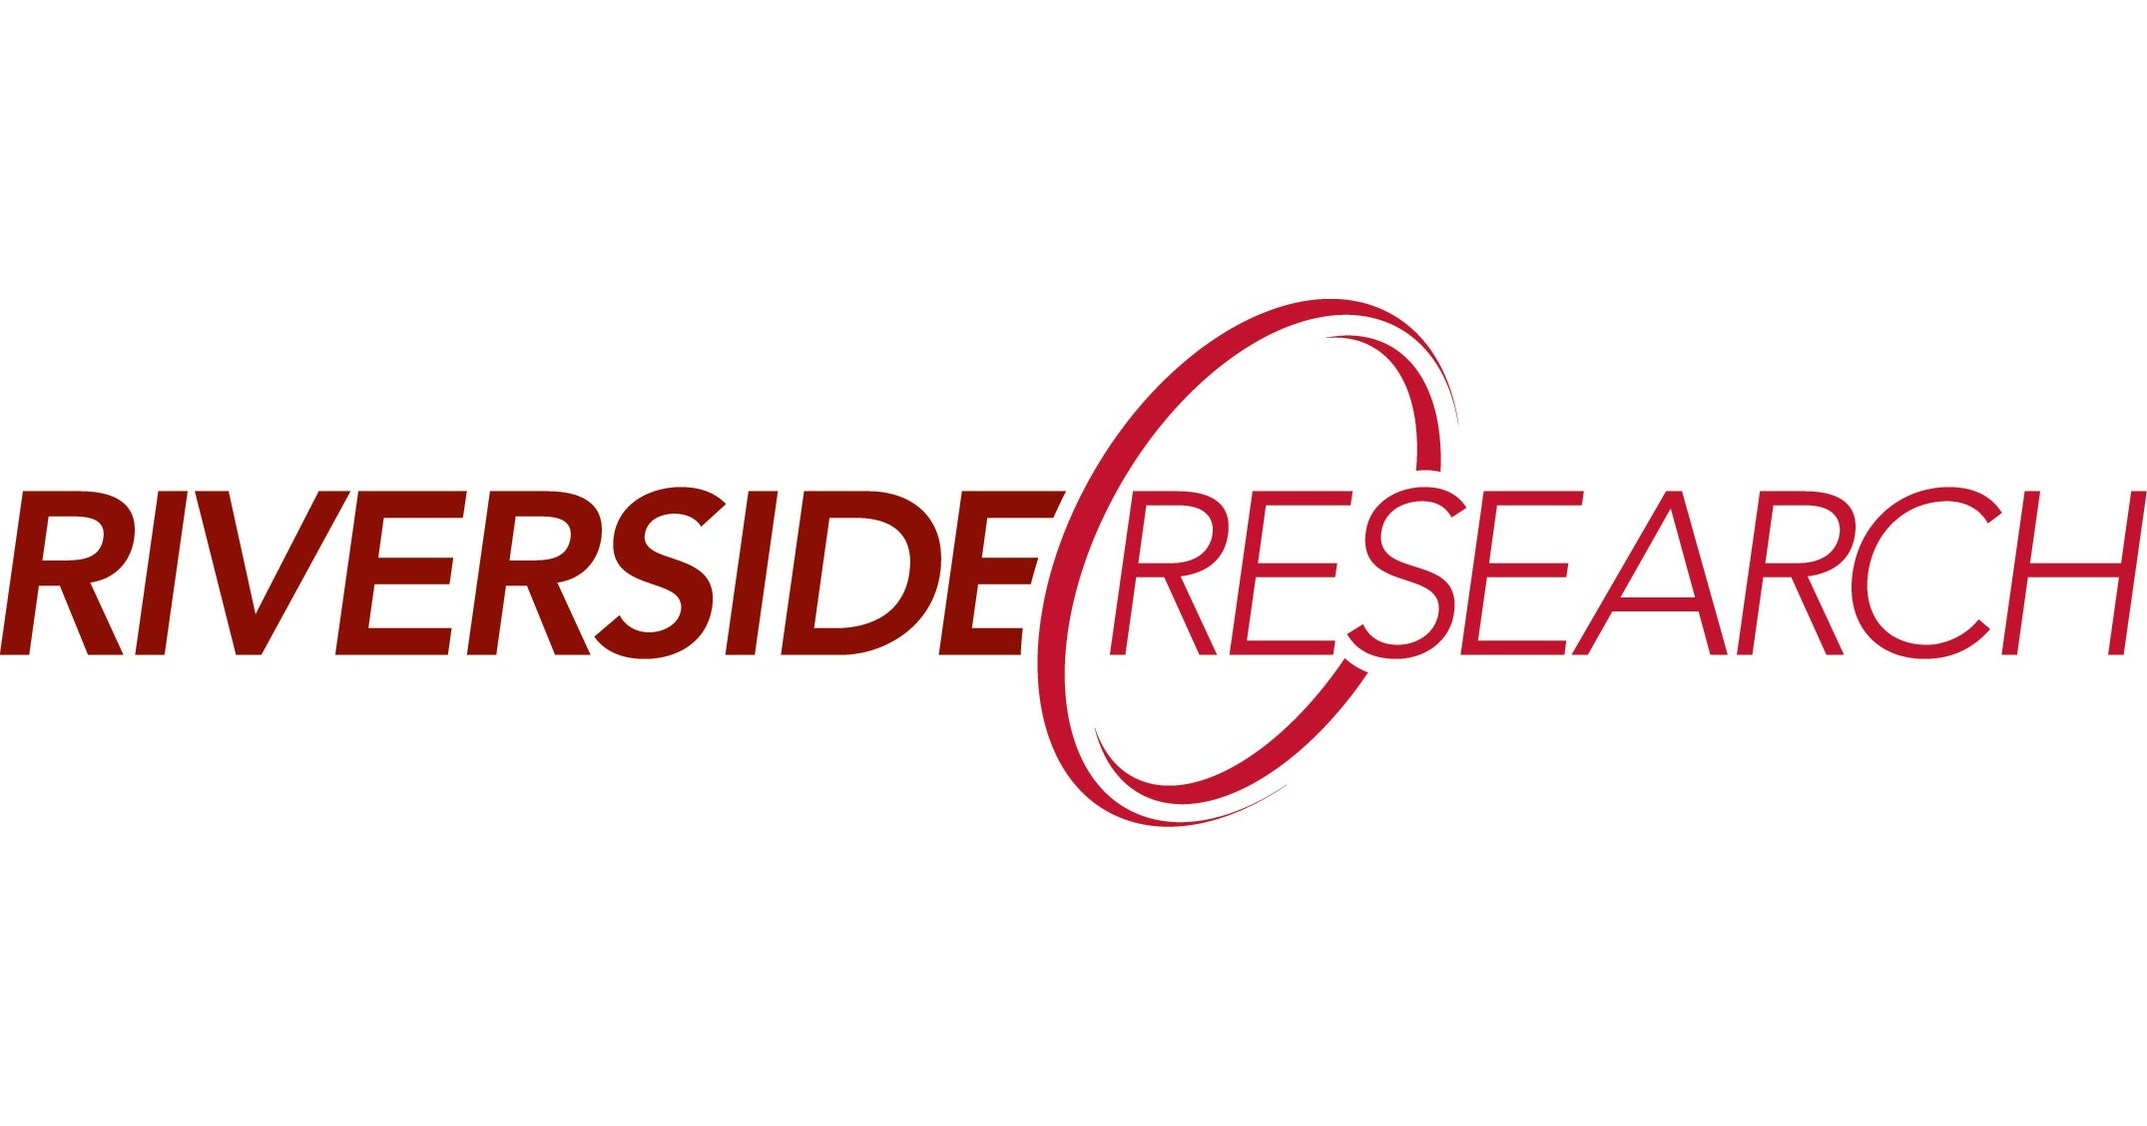 Riverside Research  Home  Facebook